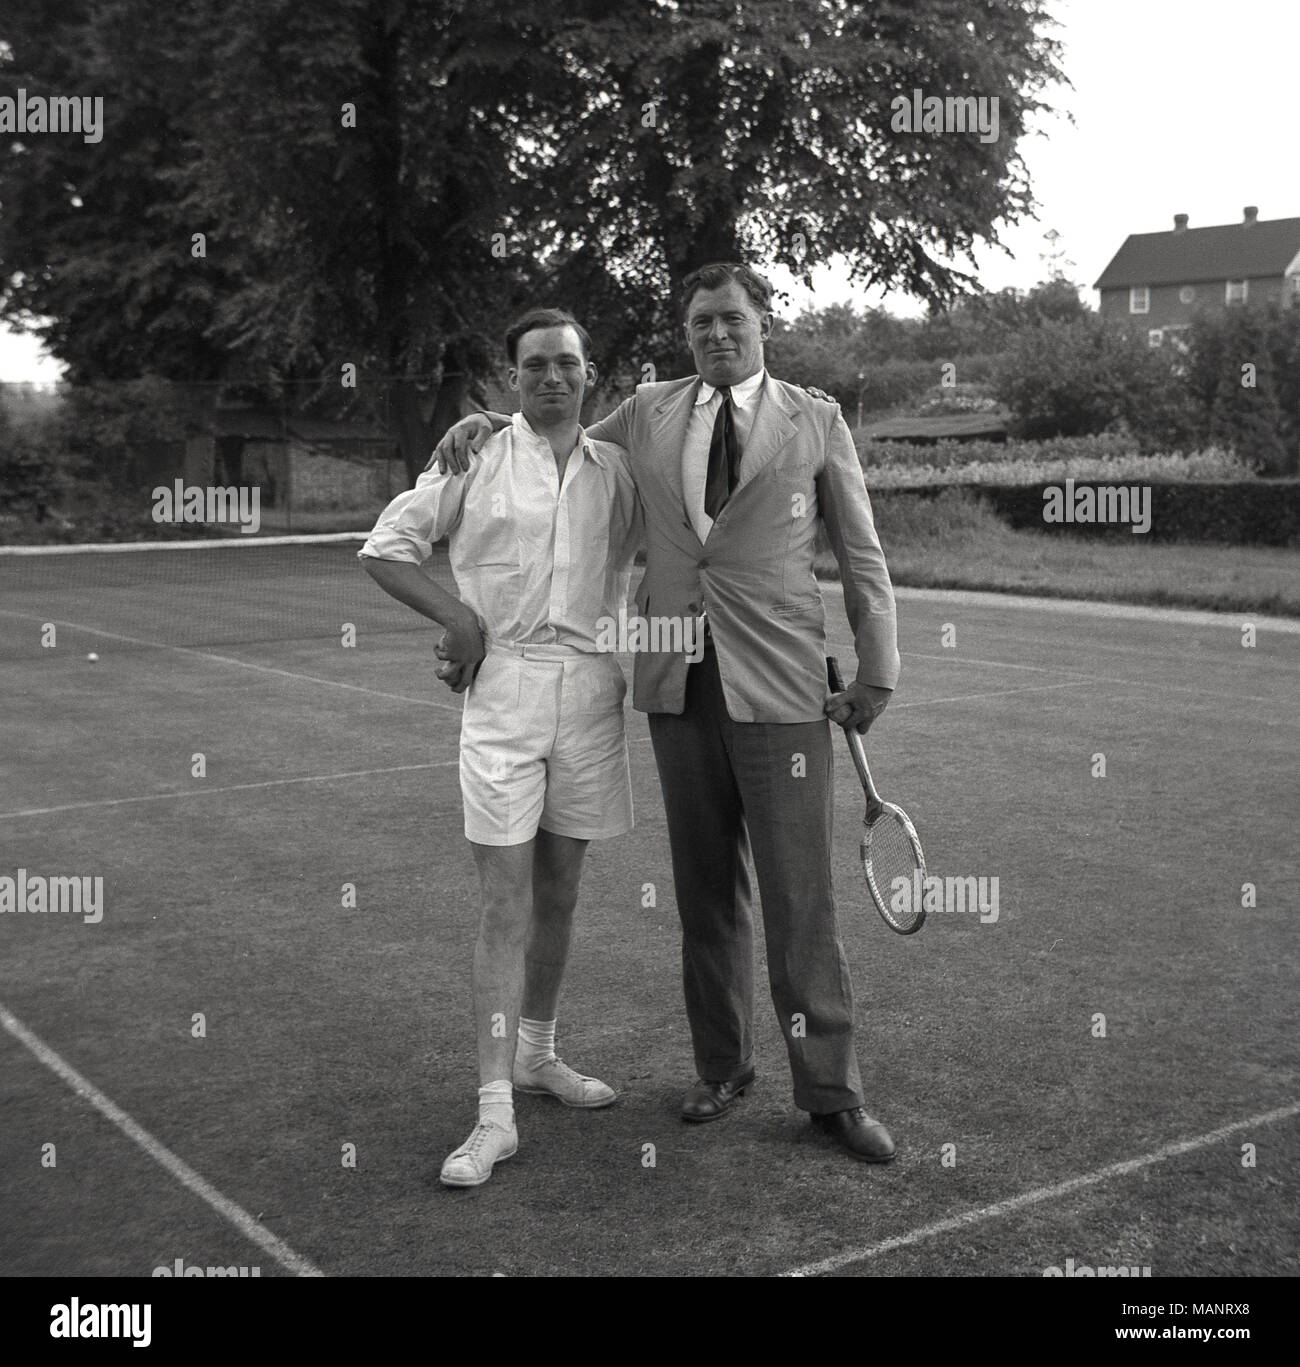 1954, historical, two men pose for a picture standing on a grass-court tennis court at the Bonham-Carter's country-house, Wyck Place, near Alton, Hampshire, England, UK. - Stock Image